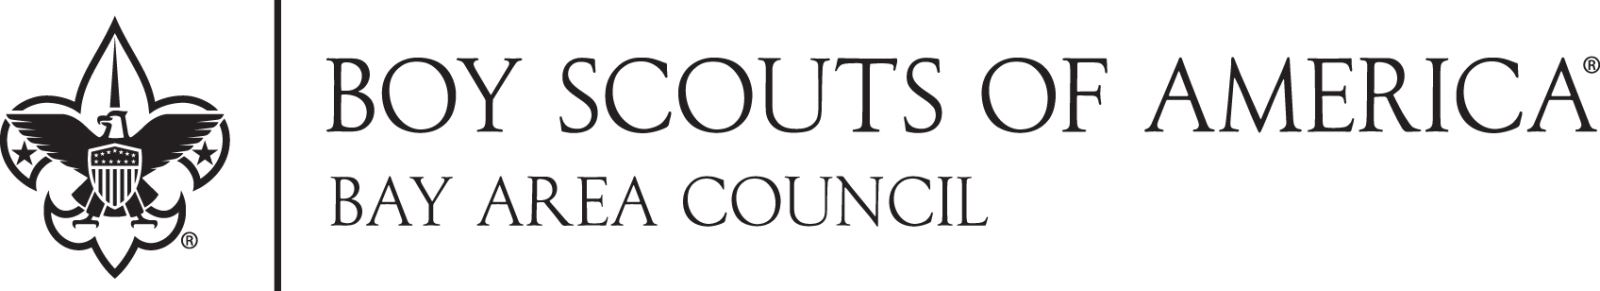 Bay Area Council, Boy Scouts of America